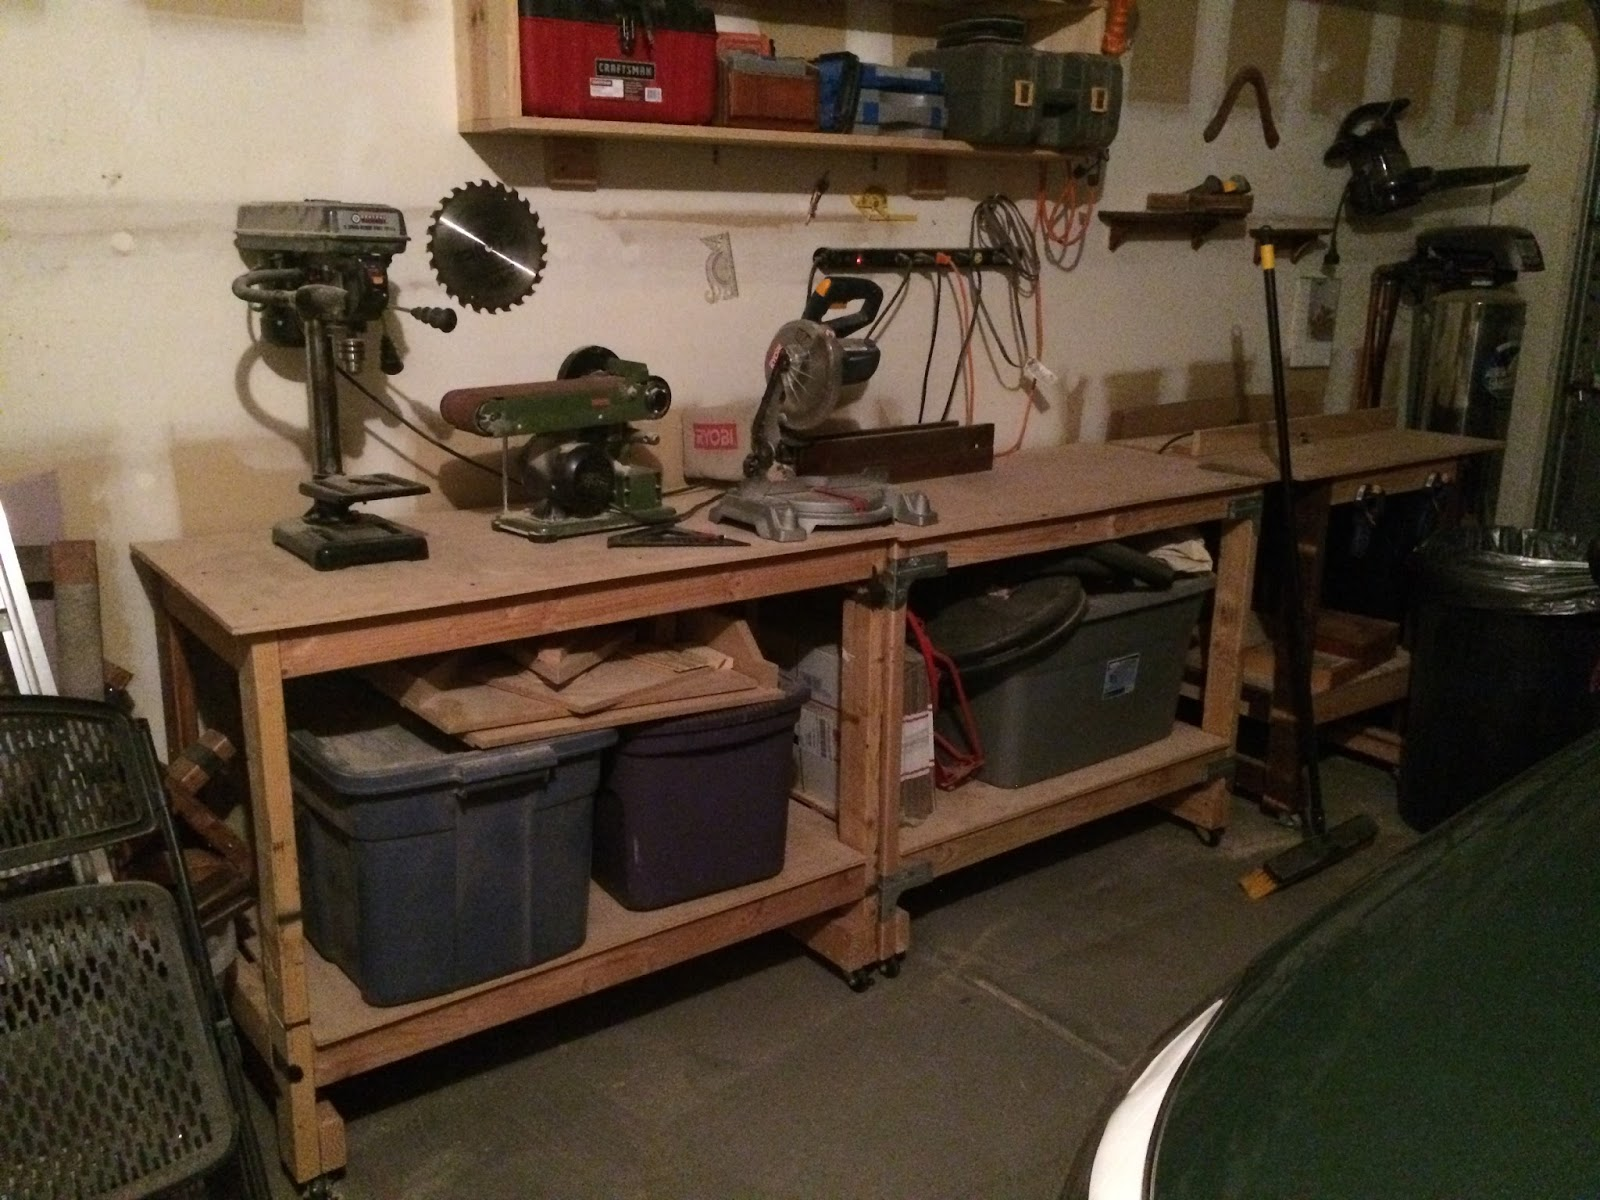 I Also Have Extra Work Tables In My Workshop That I Think I Will Utilize To  Make A New Saw Table. If Youu0027d Like To Check Out My Workshop Table Build,  ...